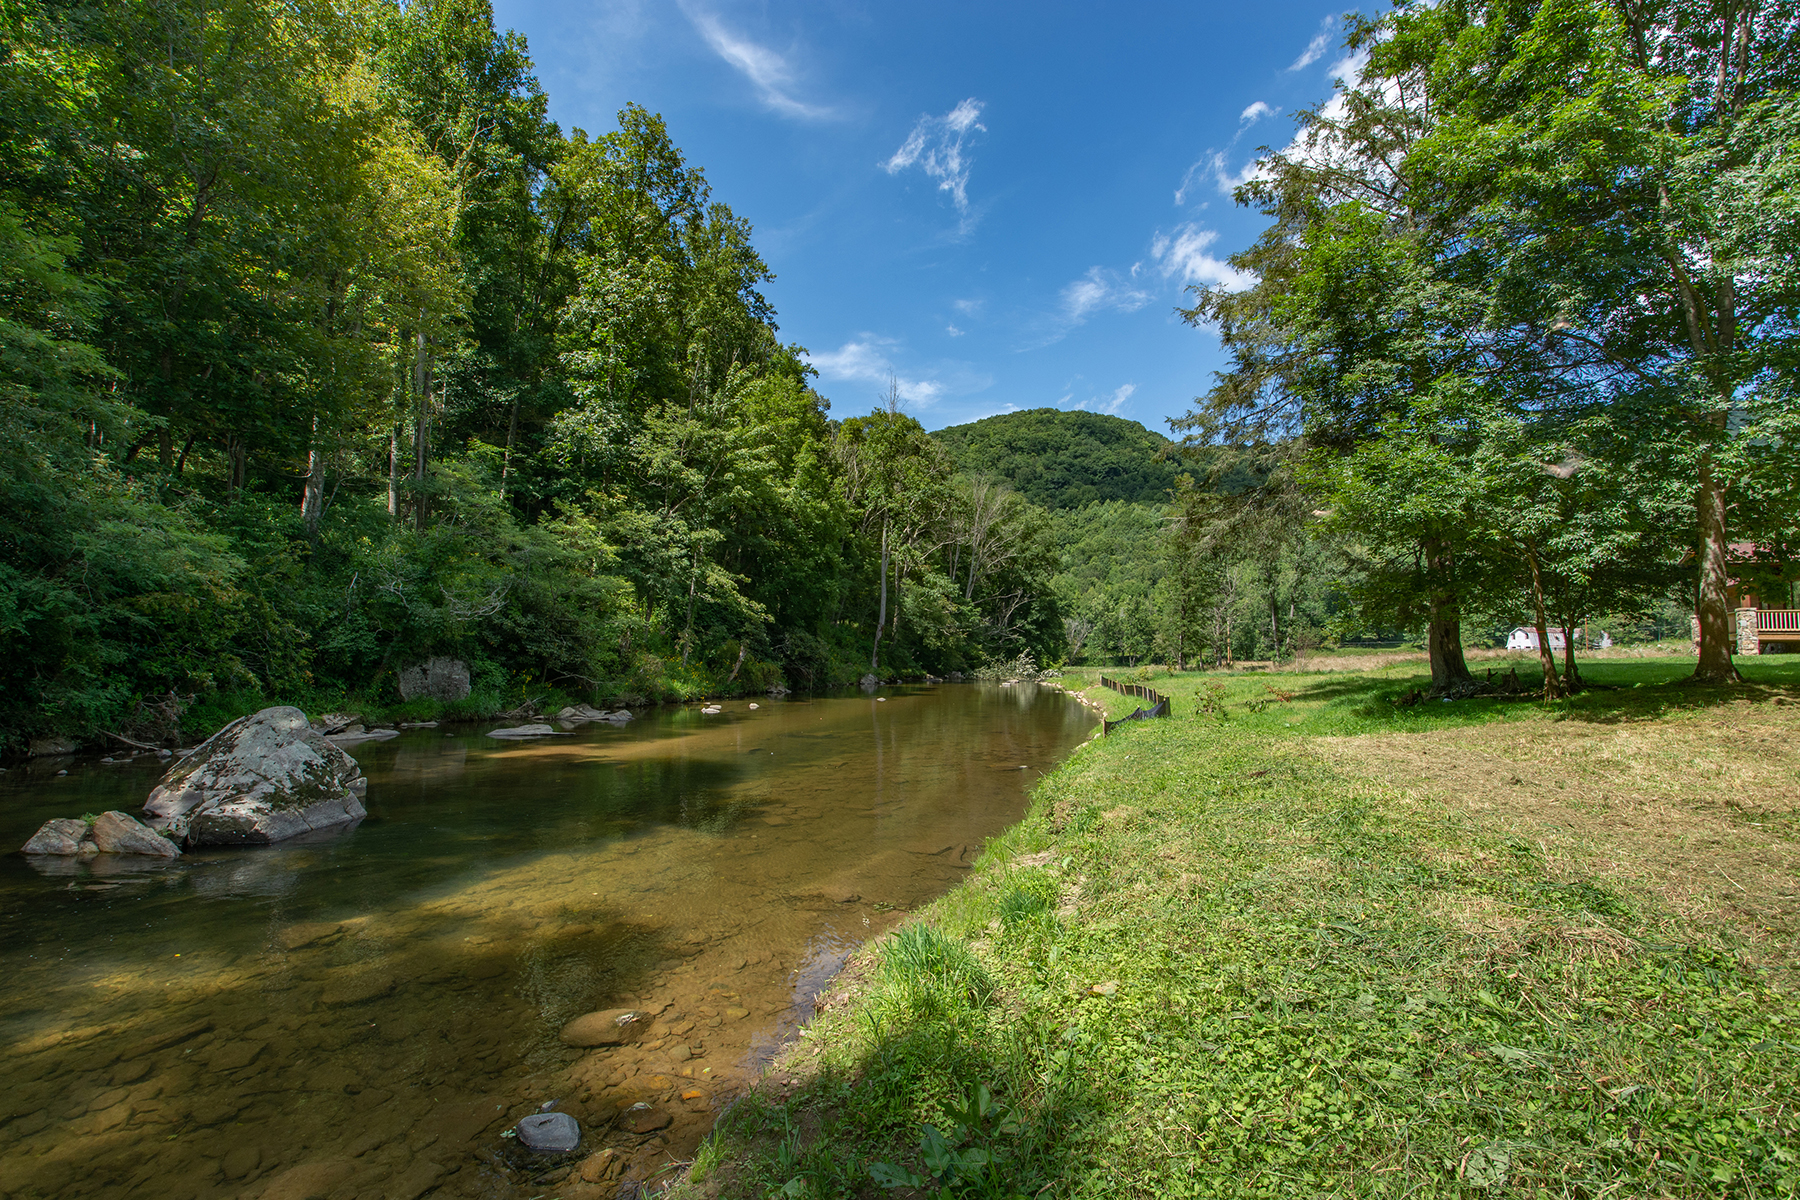 Land for Sale at ELK PARK - ELK RIVER REFUGE 5 Water Sound Dr Elk Park, North Carolina 28622 United States